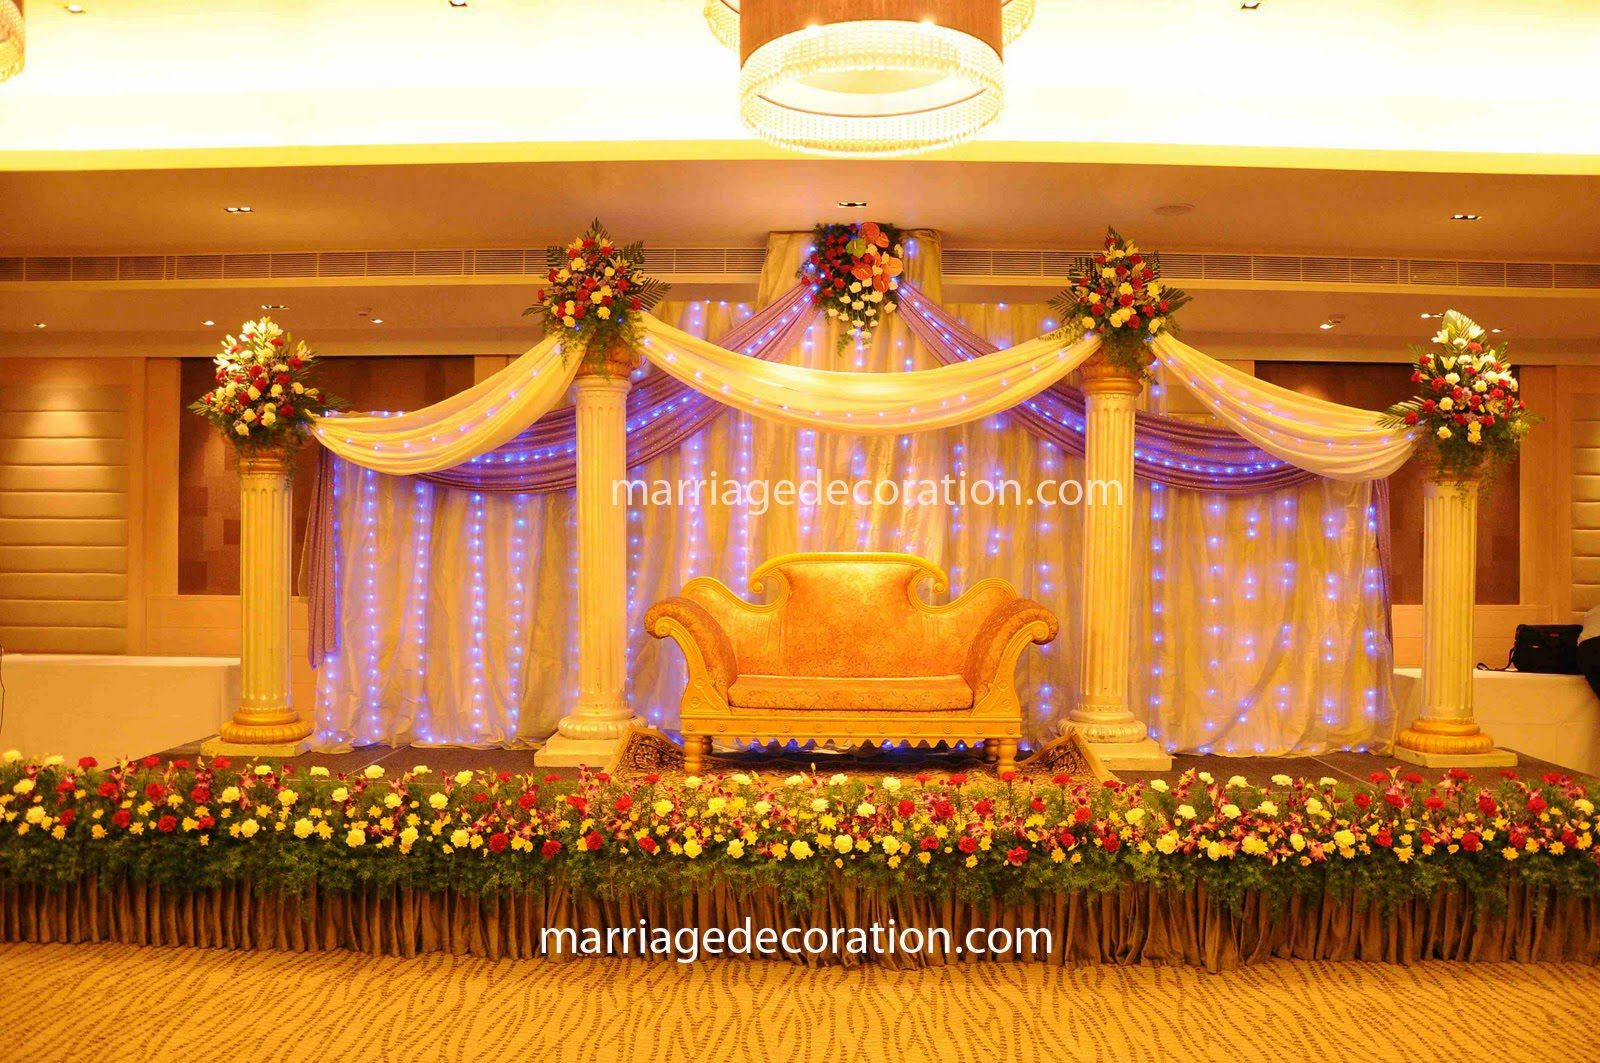 Pictures for decorating a church wedding free wedding decorating pictures for decorating a church wedding free wedding decorating idea wedding reception decorations junglespirit Images